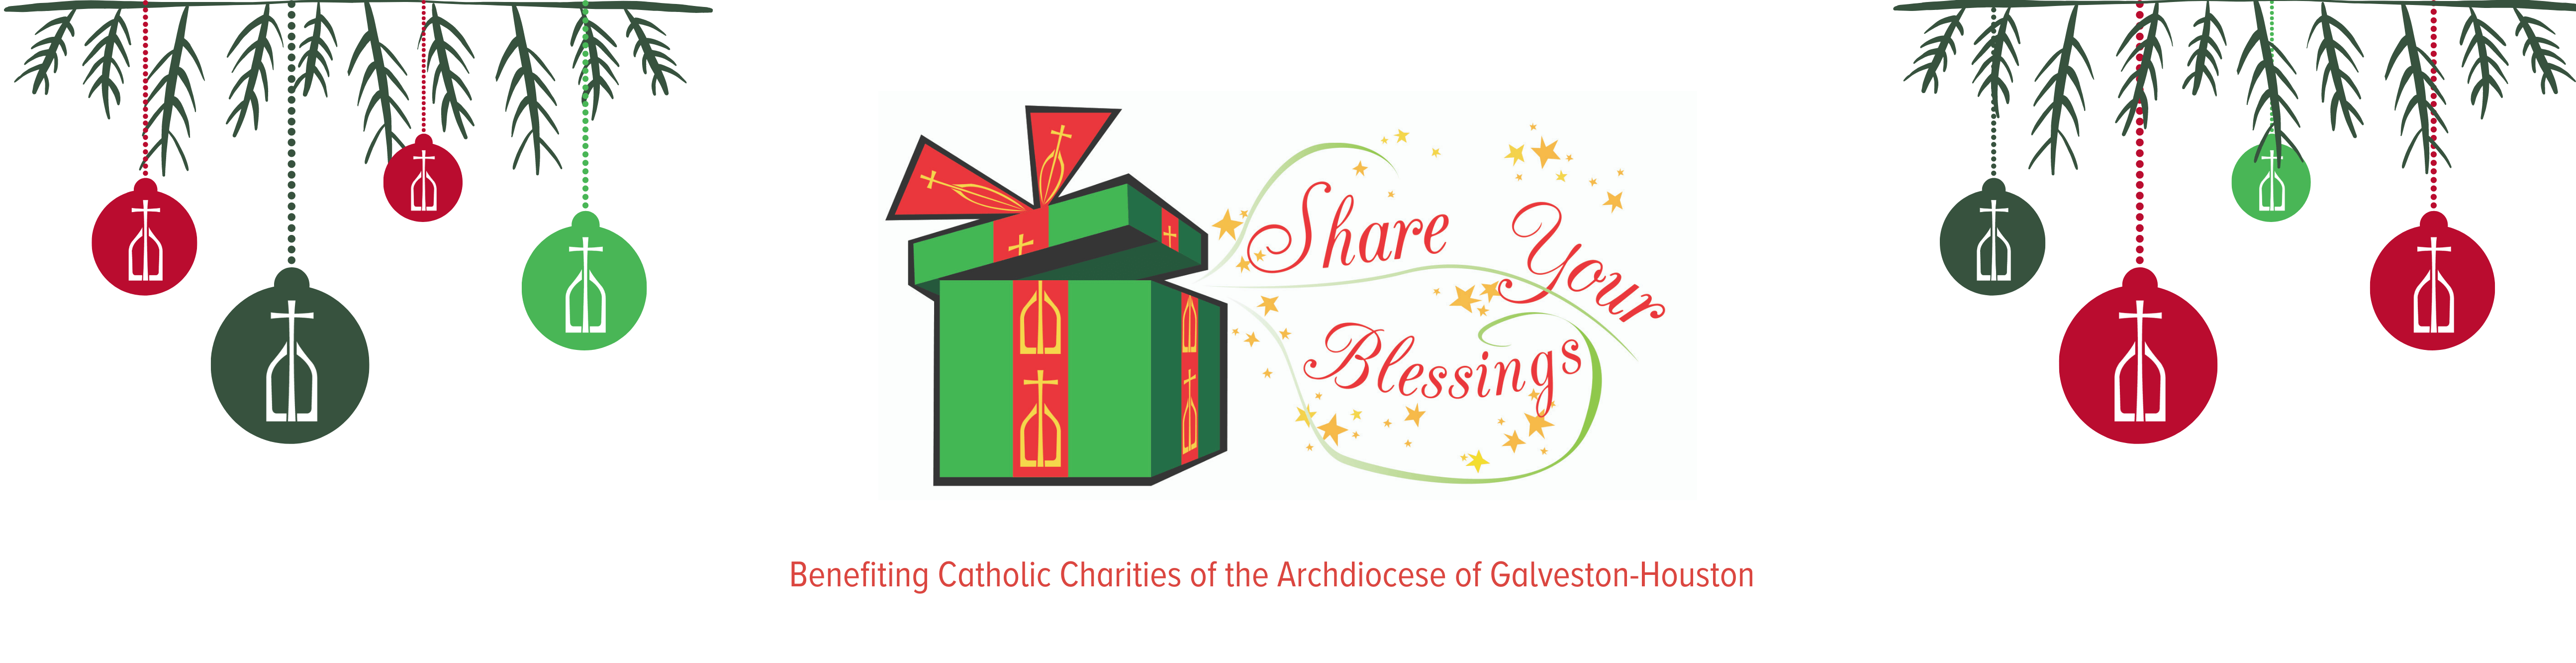 Share Your Blessings benefiting Catholic Charities of the Archdiocese of Galveston-Houston